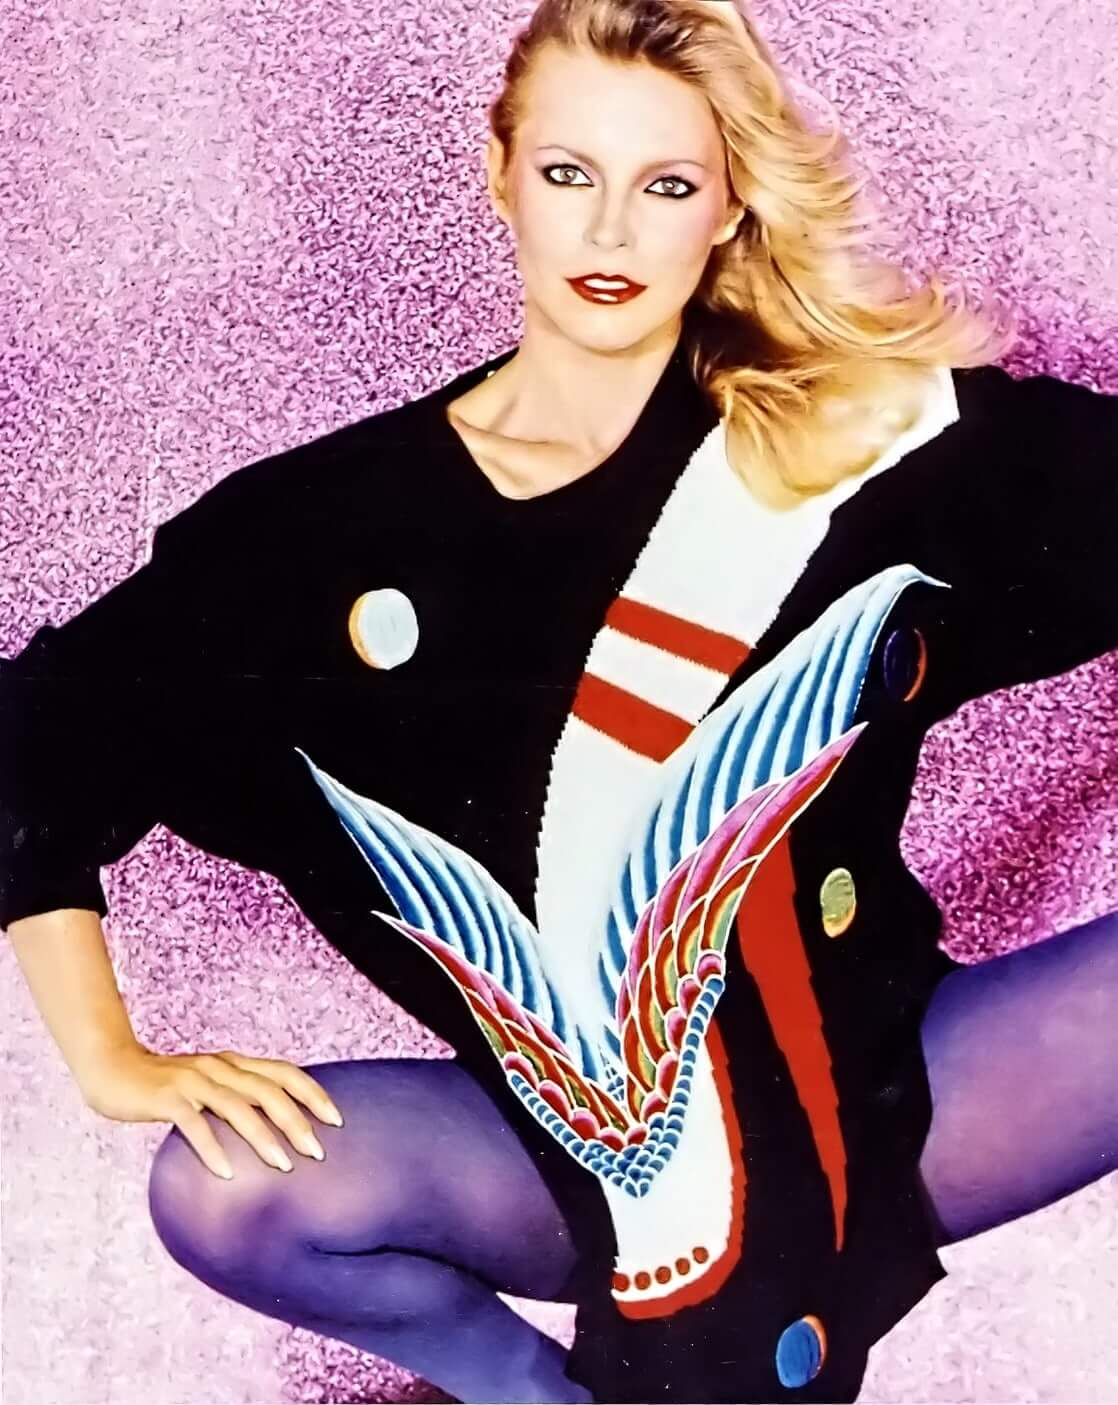 Cheryl Ladd hot picture